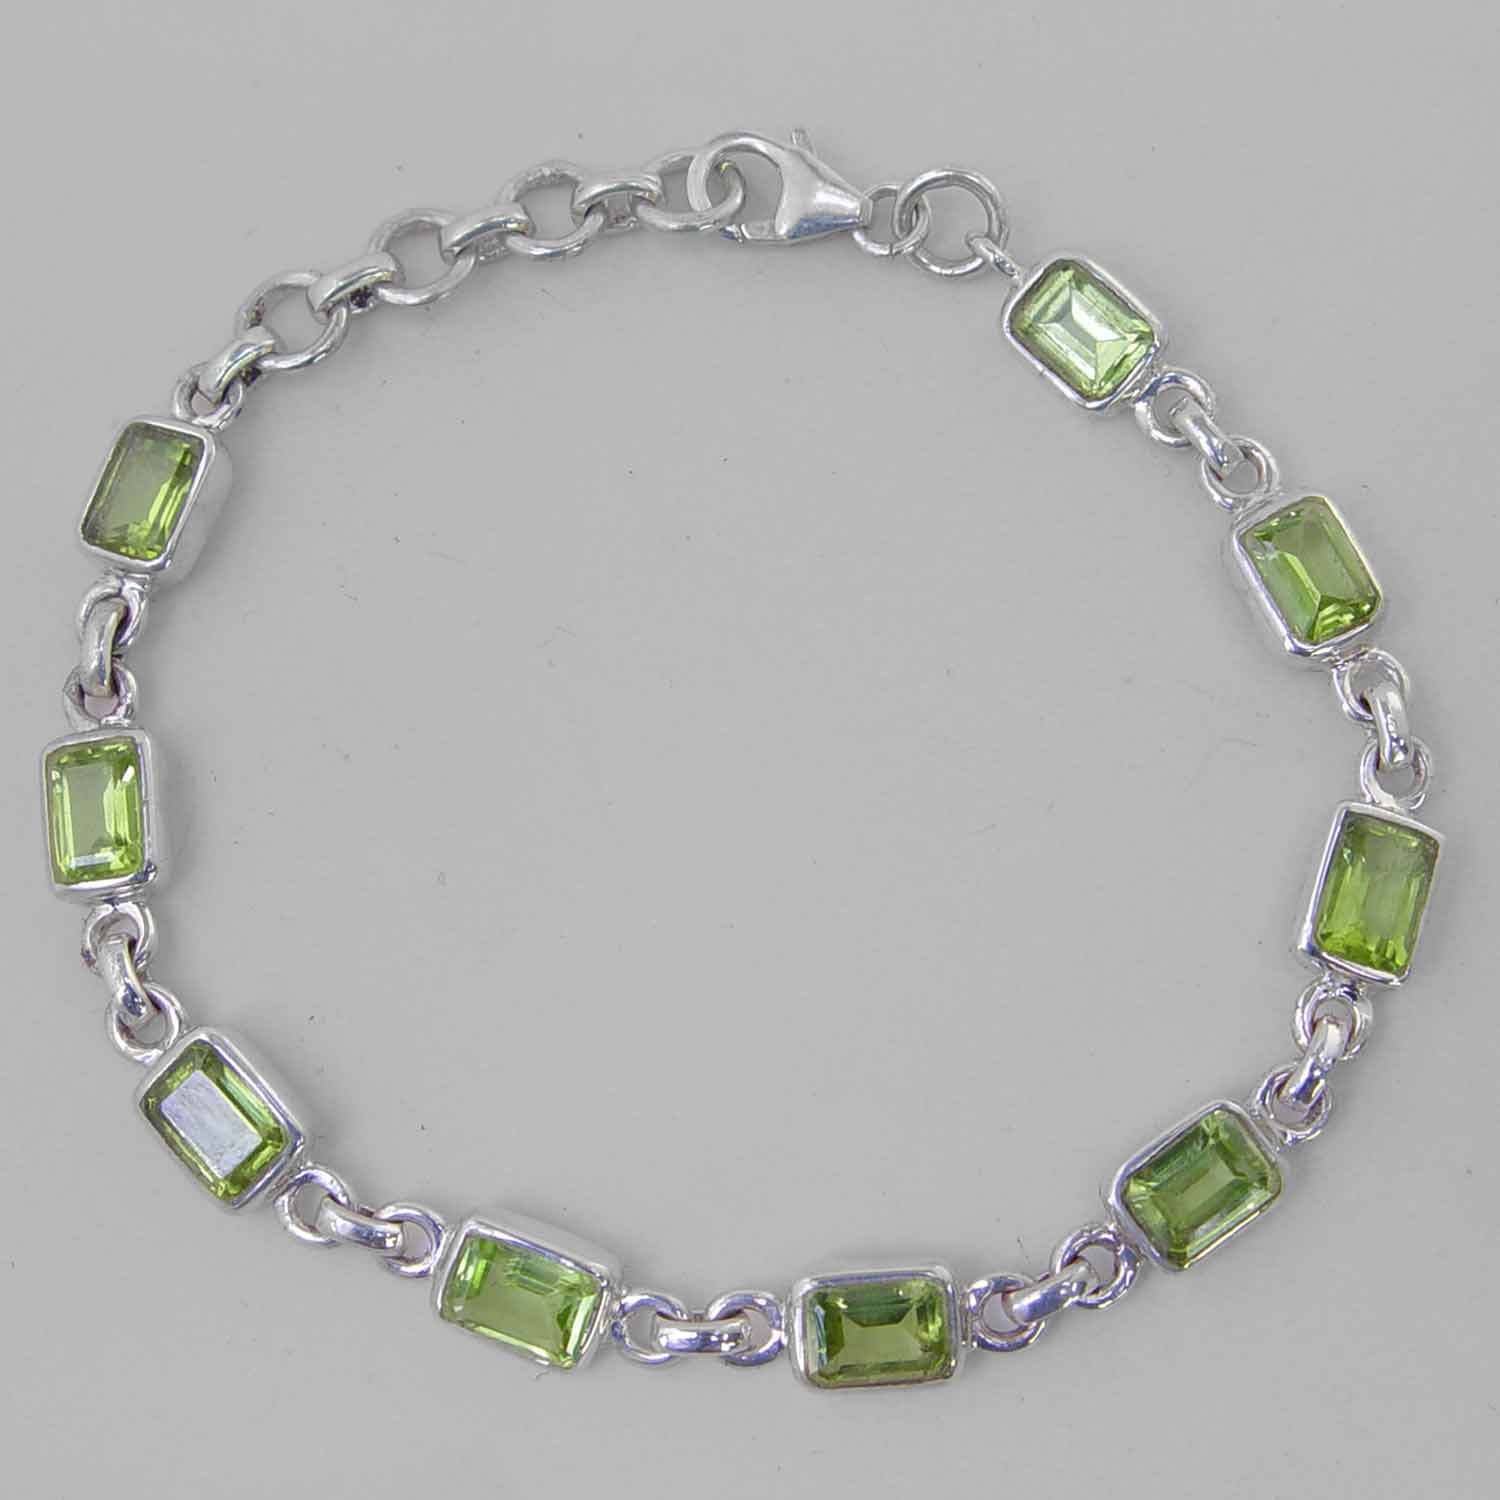 Peridot 9 Faceted Emerald Cut Sterling Silver Link Bracelet - 16 CTW